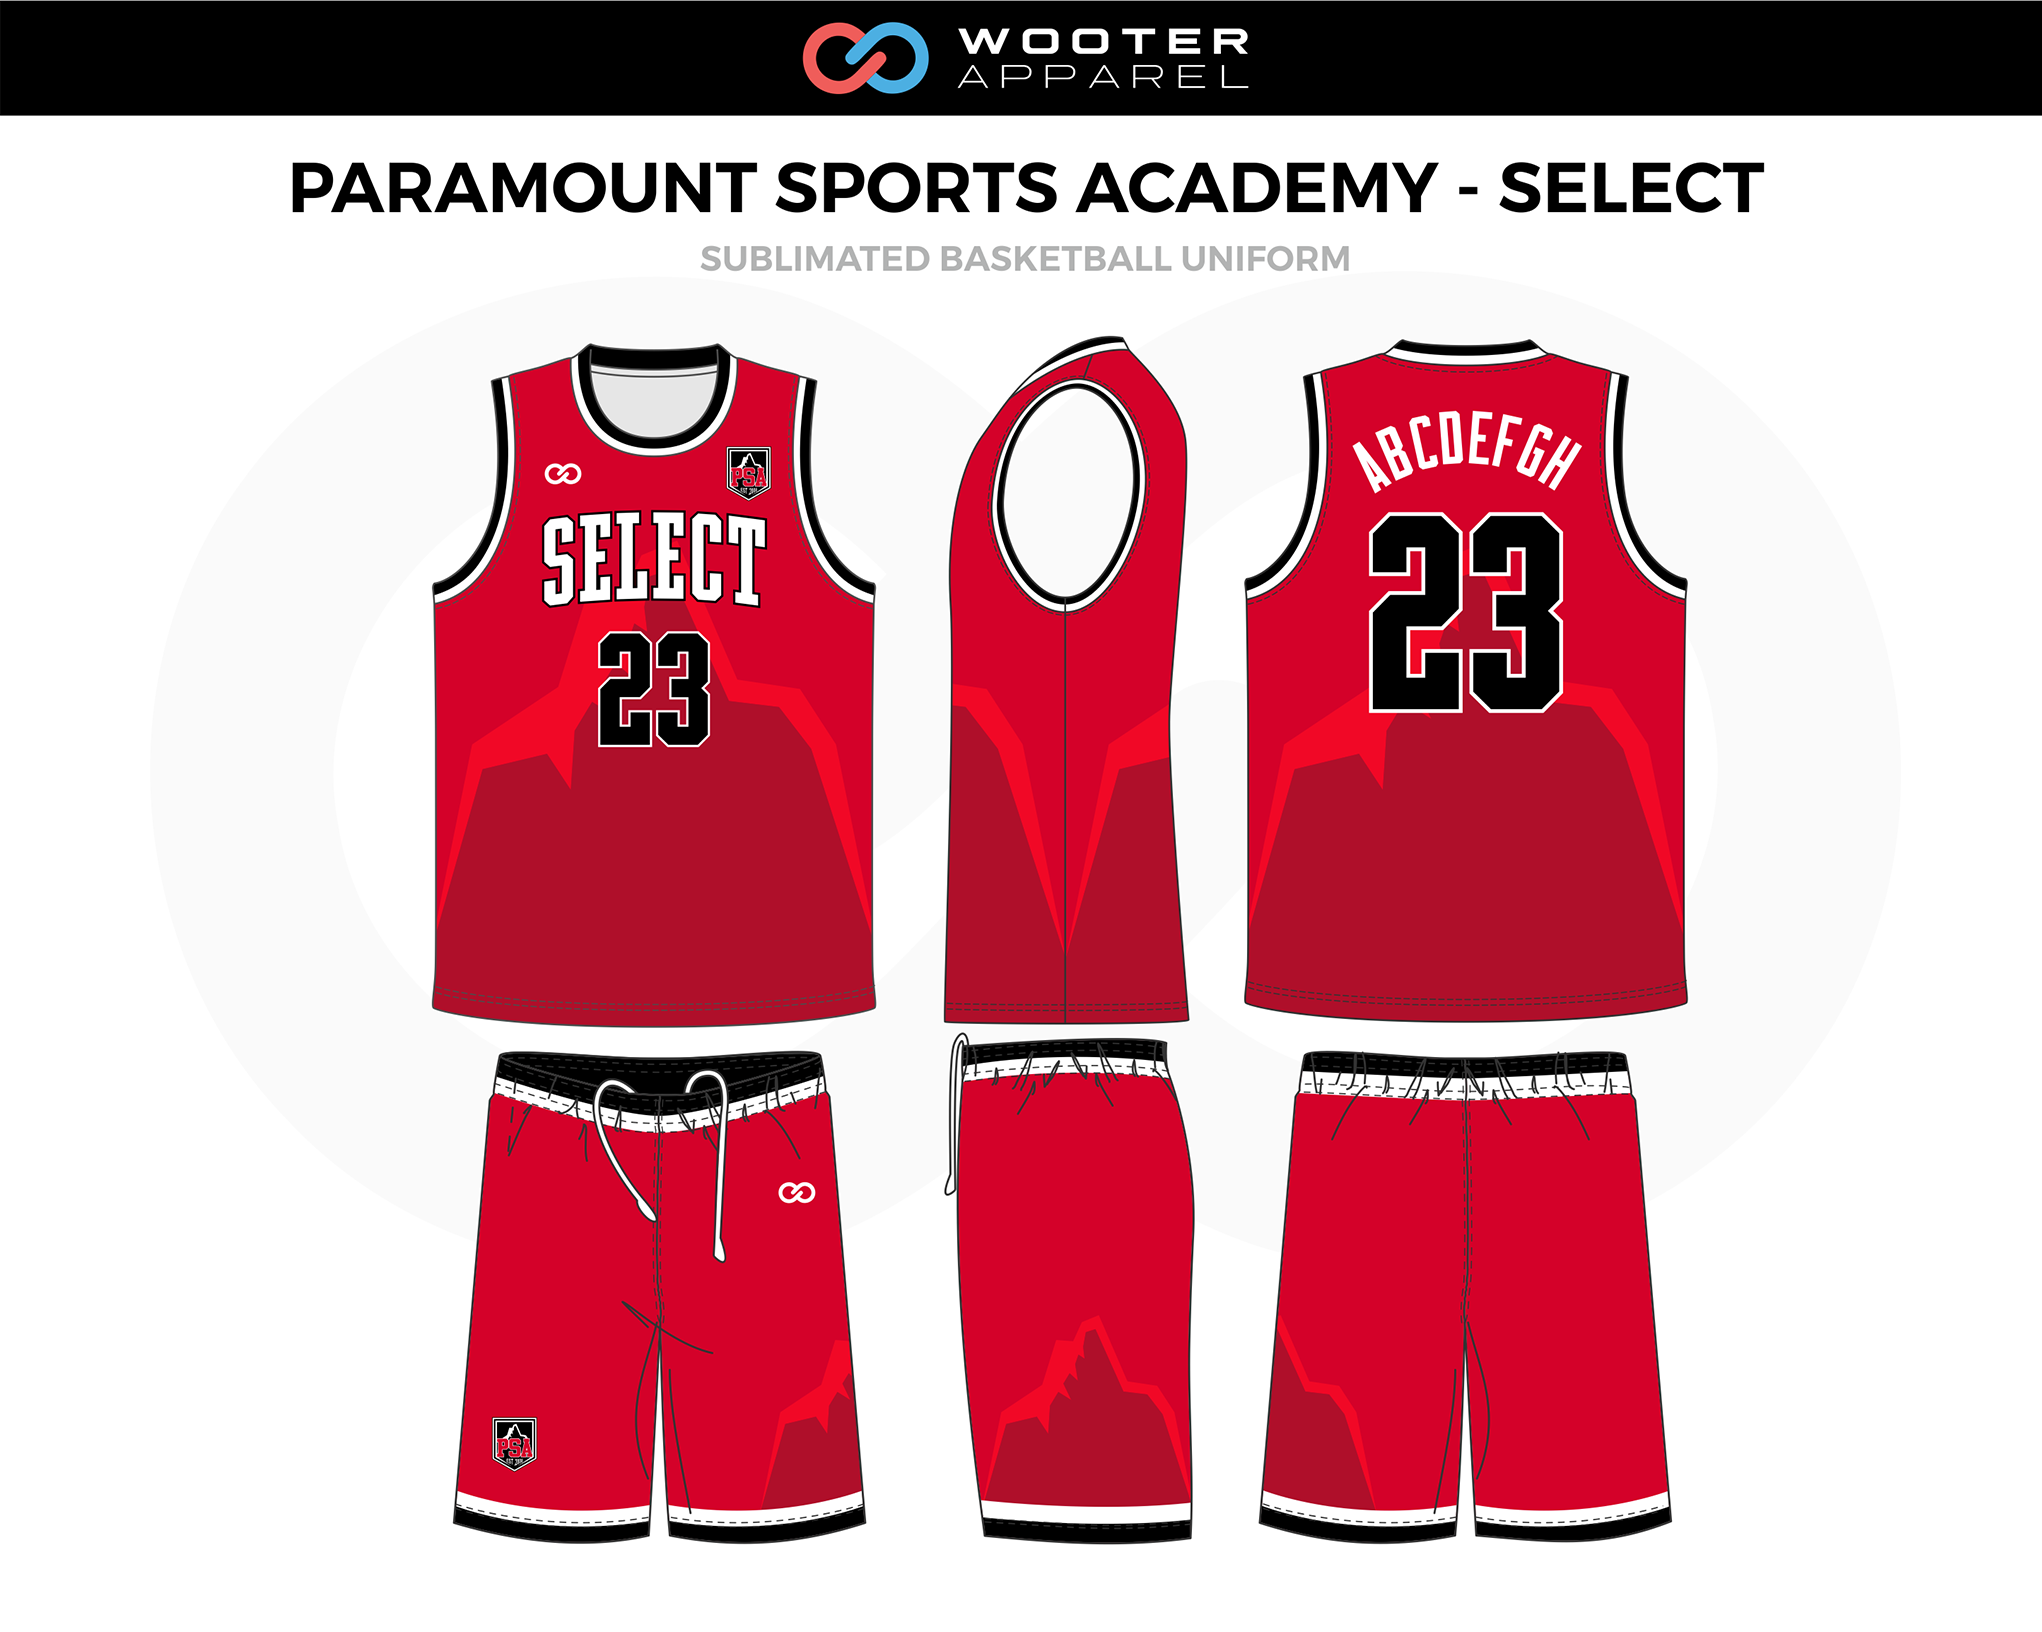 Paramount Sports Academy Red Maroon Black White Custom Basketball Uniform Jerseys Shorts In 2020 Basketball Uniforms Design Jersey Design Basketball Uniforms